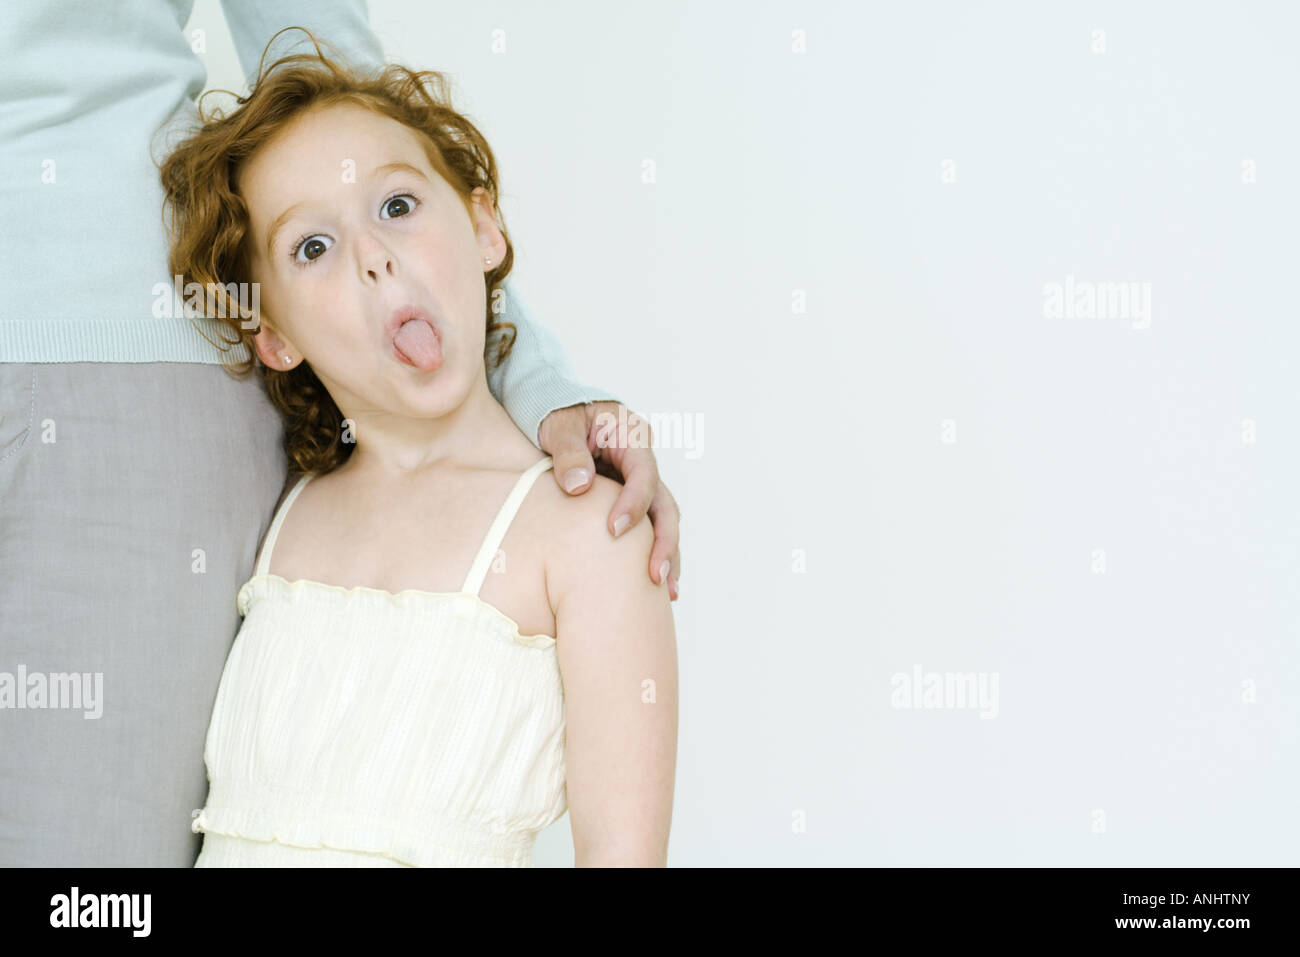 Little girl holding onto mother's leg, sticking tongue out at camera - Stock Image